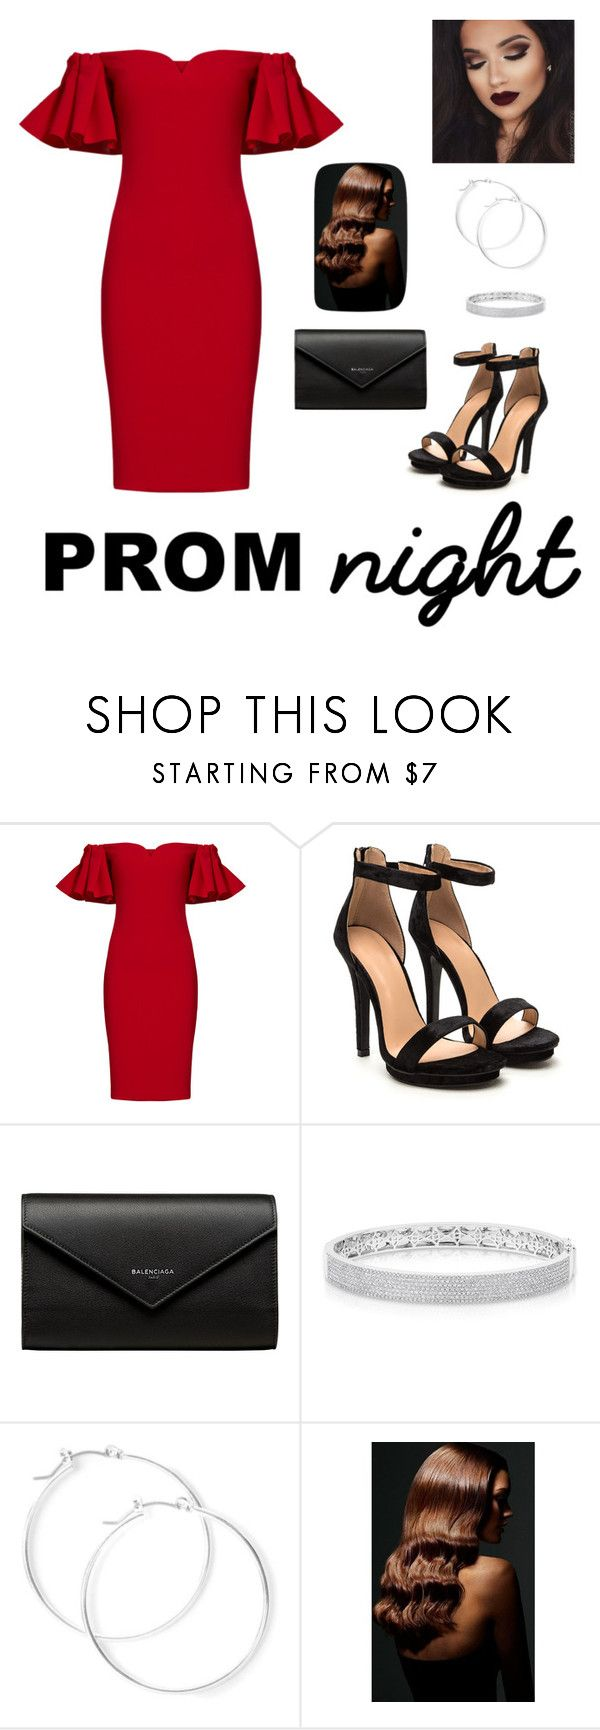 """PROM night"" by natalyholly on Polyvore featuring Badgley Mischka, Balenciaga, Anne Sisteron, claire's and BaByliss"